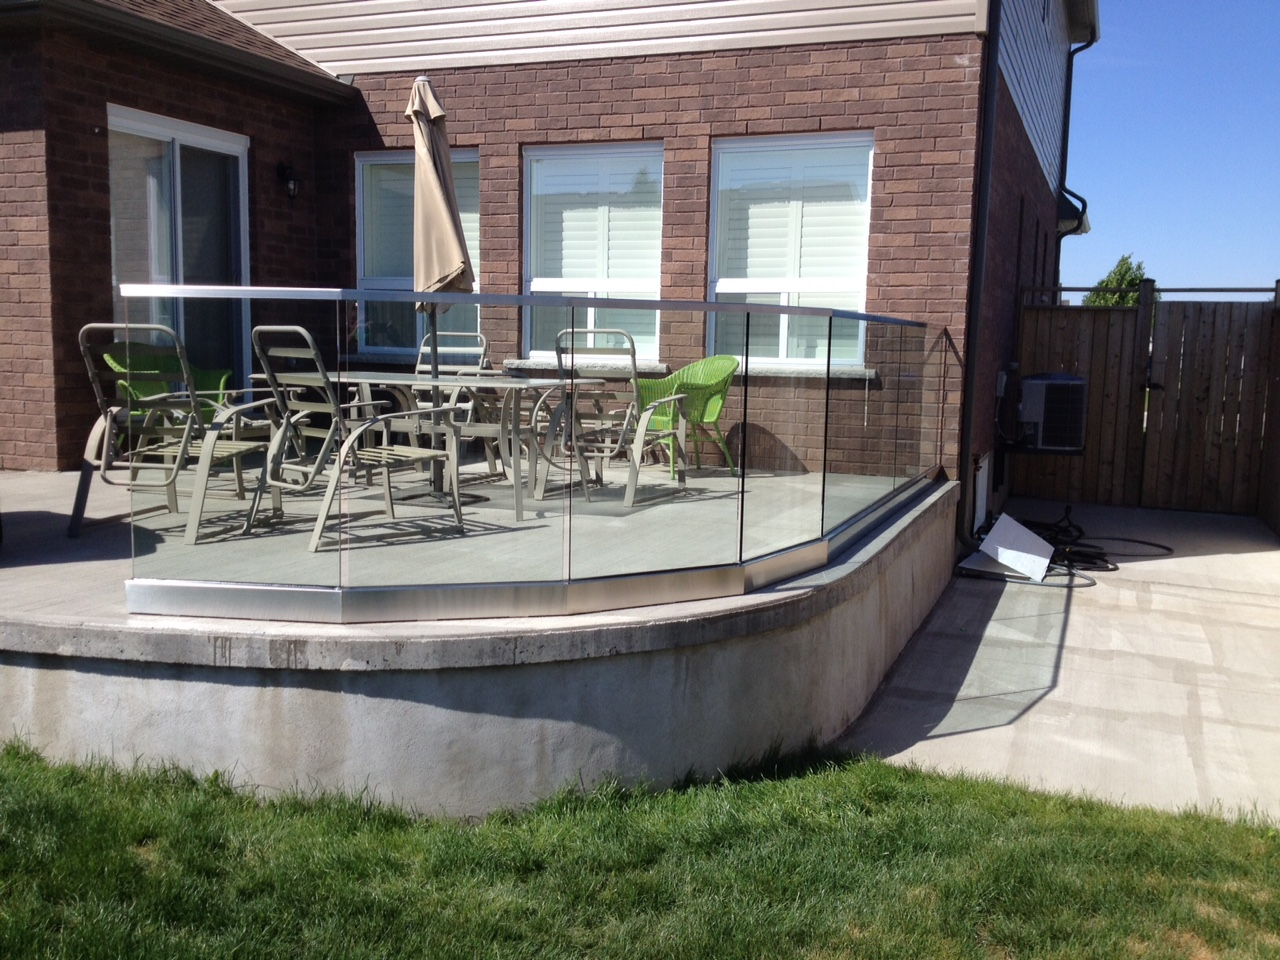 glass railings on porch